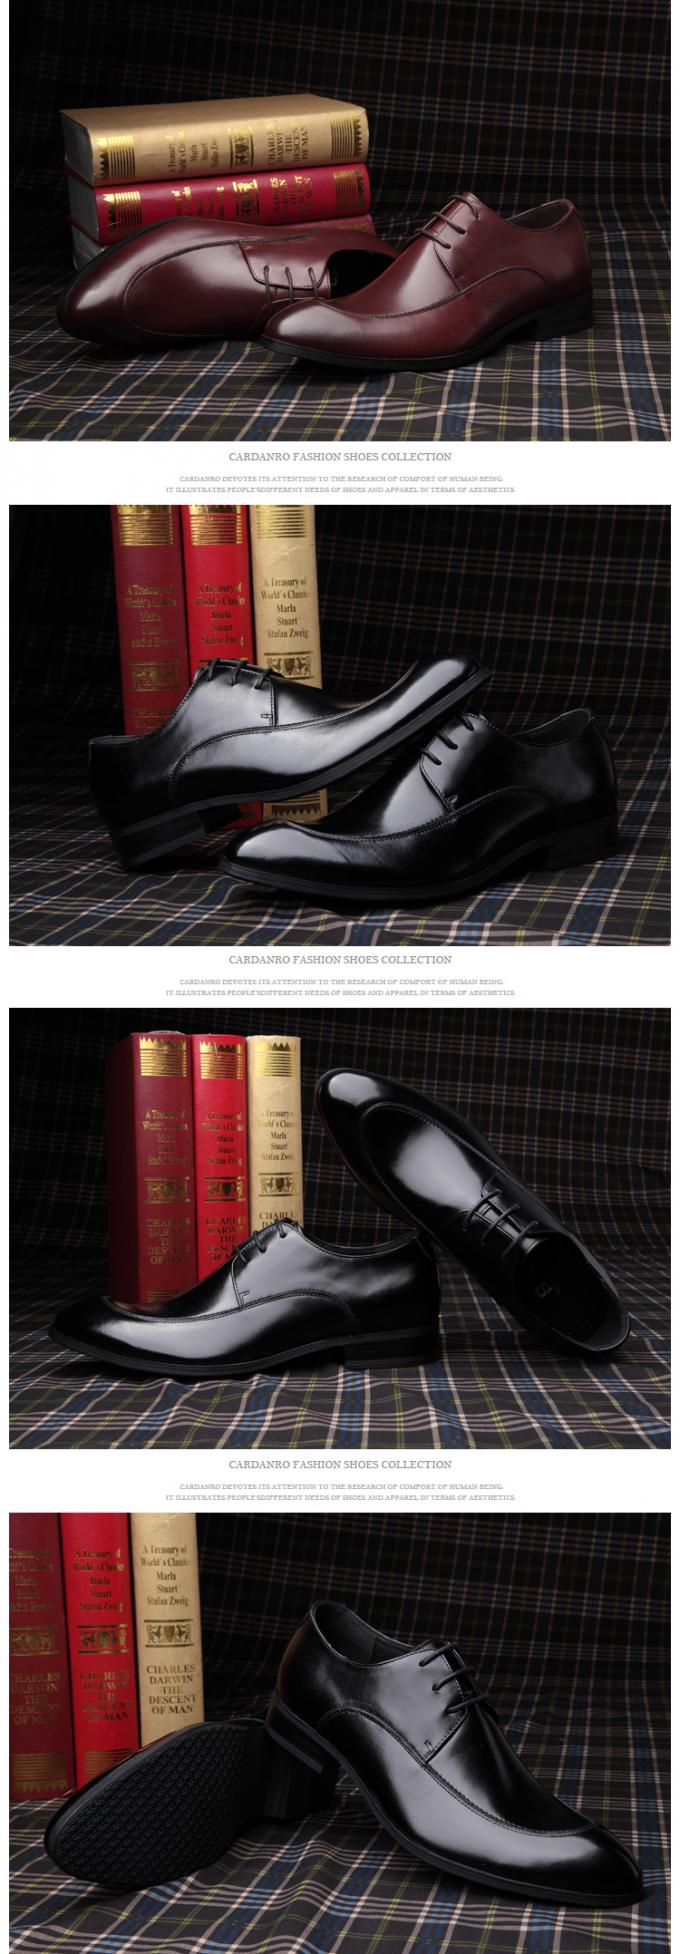 vent comfortable light image work and shoe comforter mens with clog white men ventilation shoes crocs specialist ports